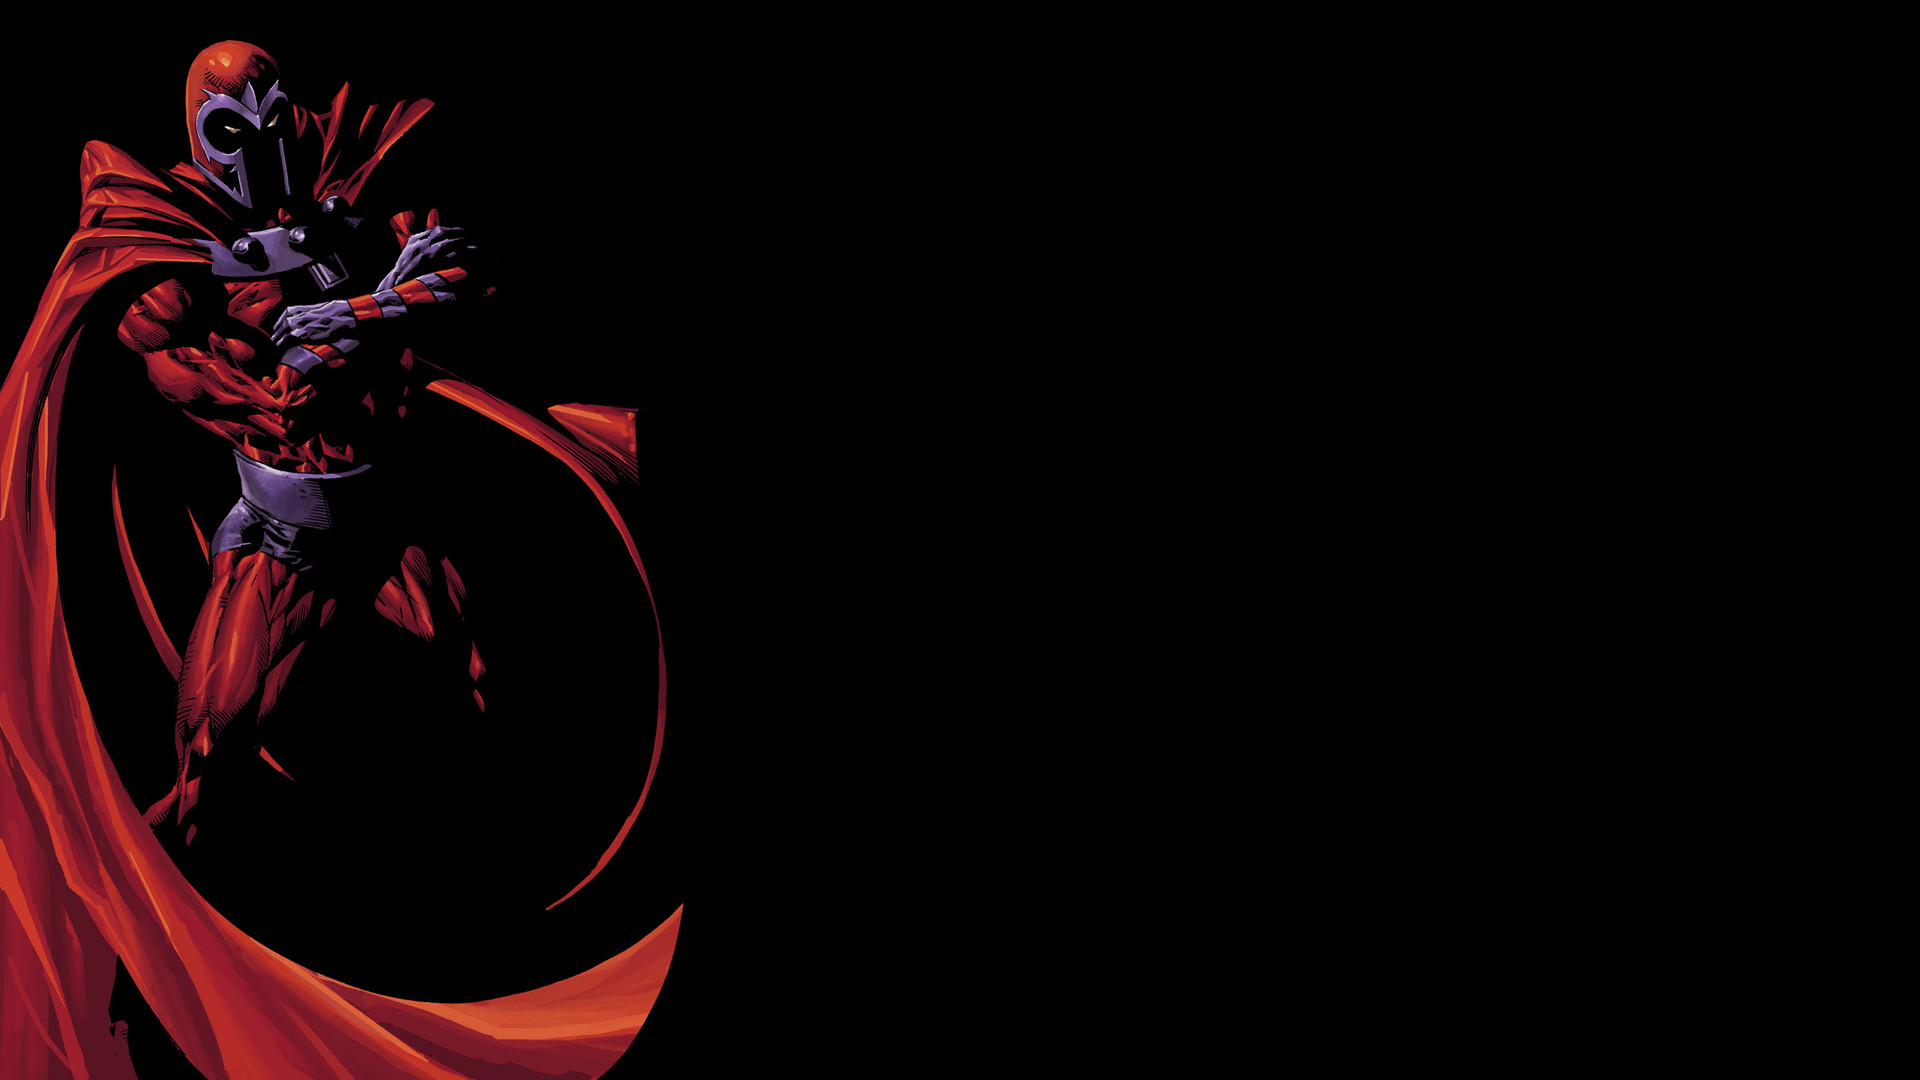 download Image Gallery magneto wallpaper [1920x1080] for your 1920x1080